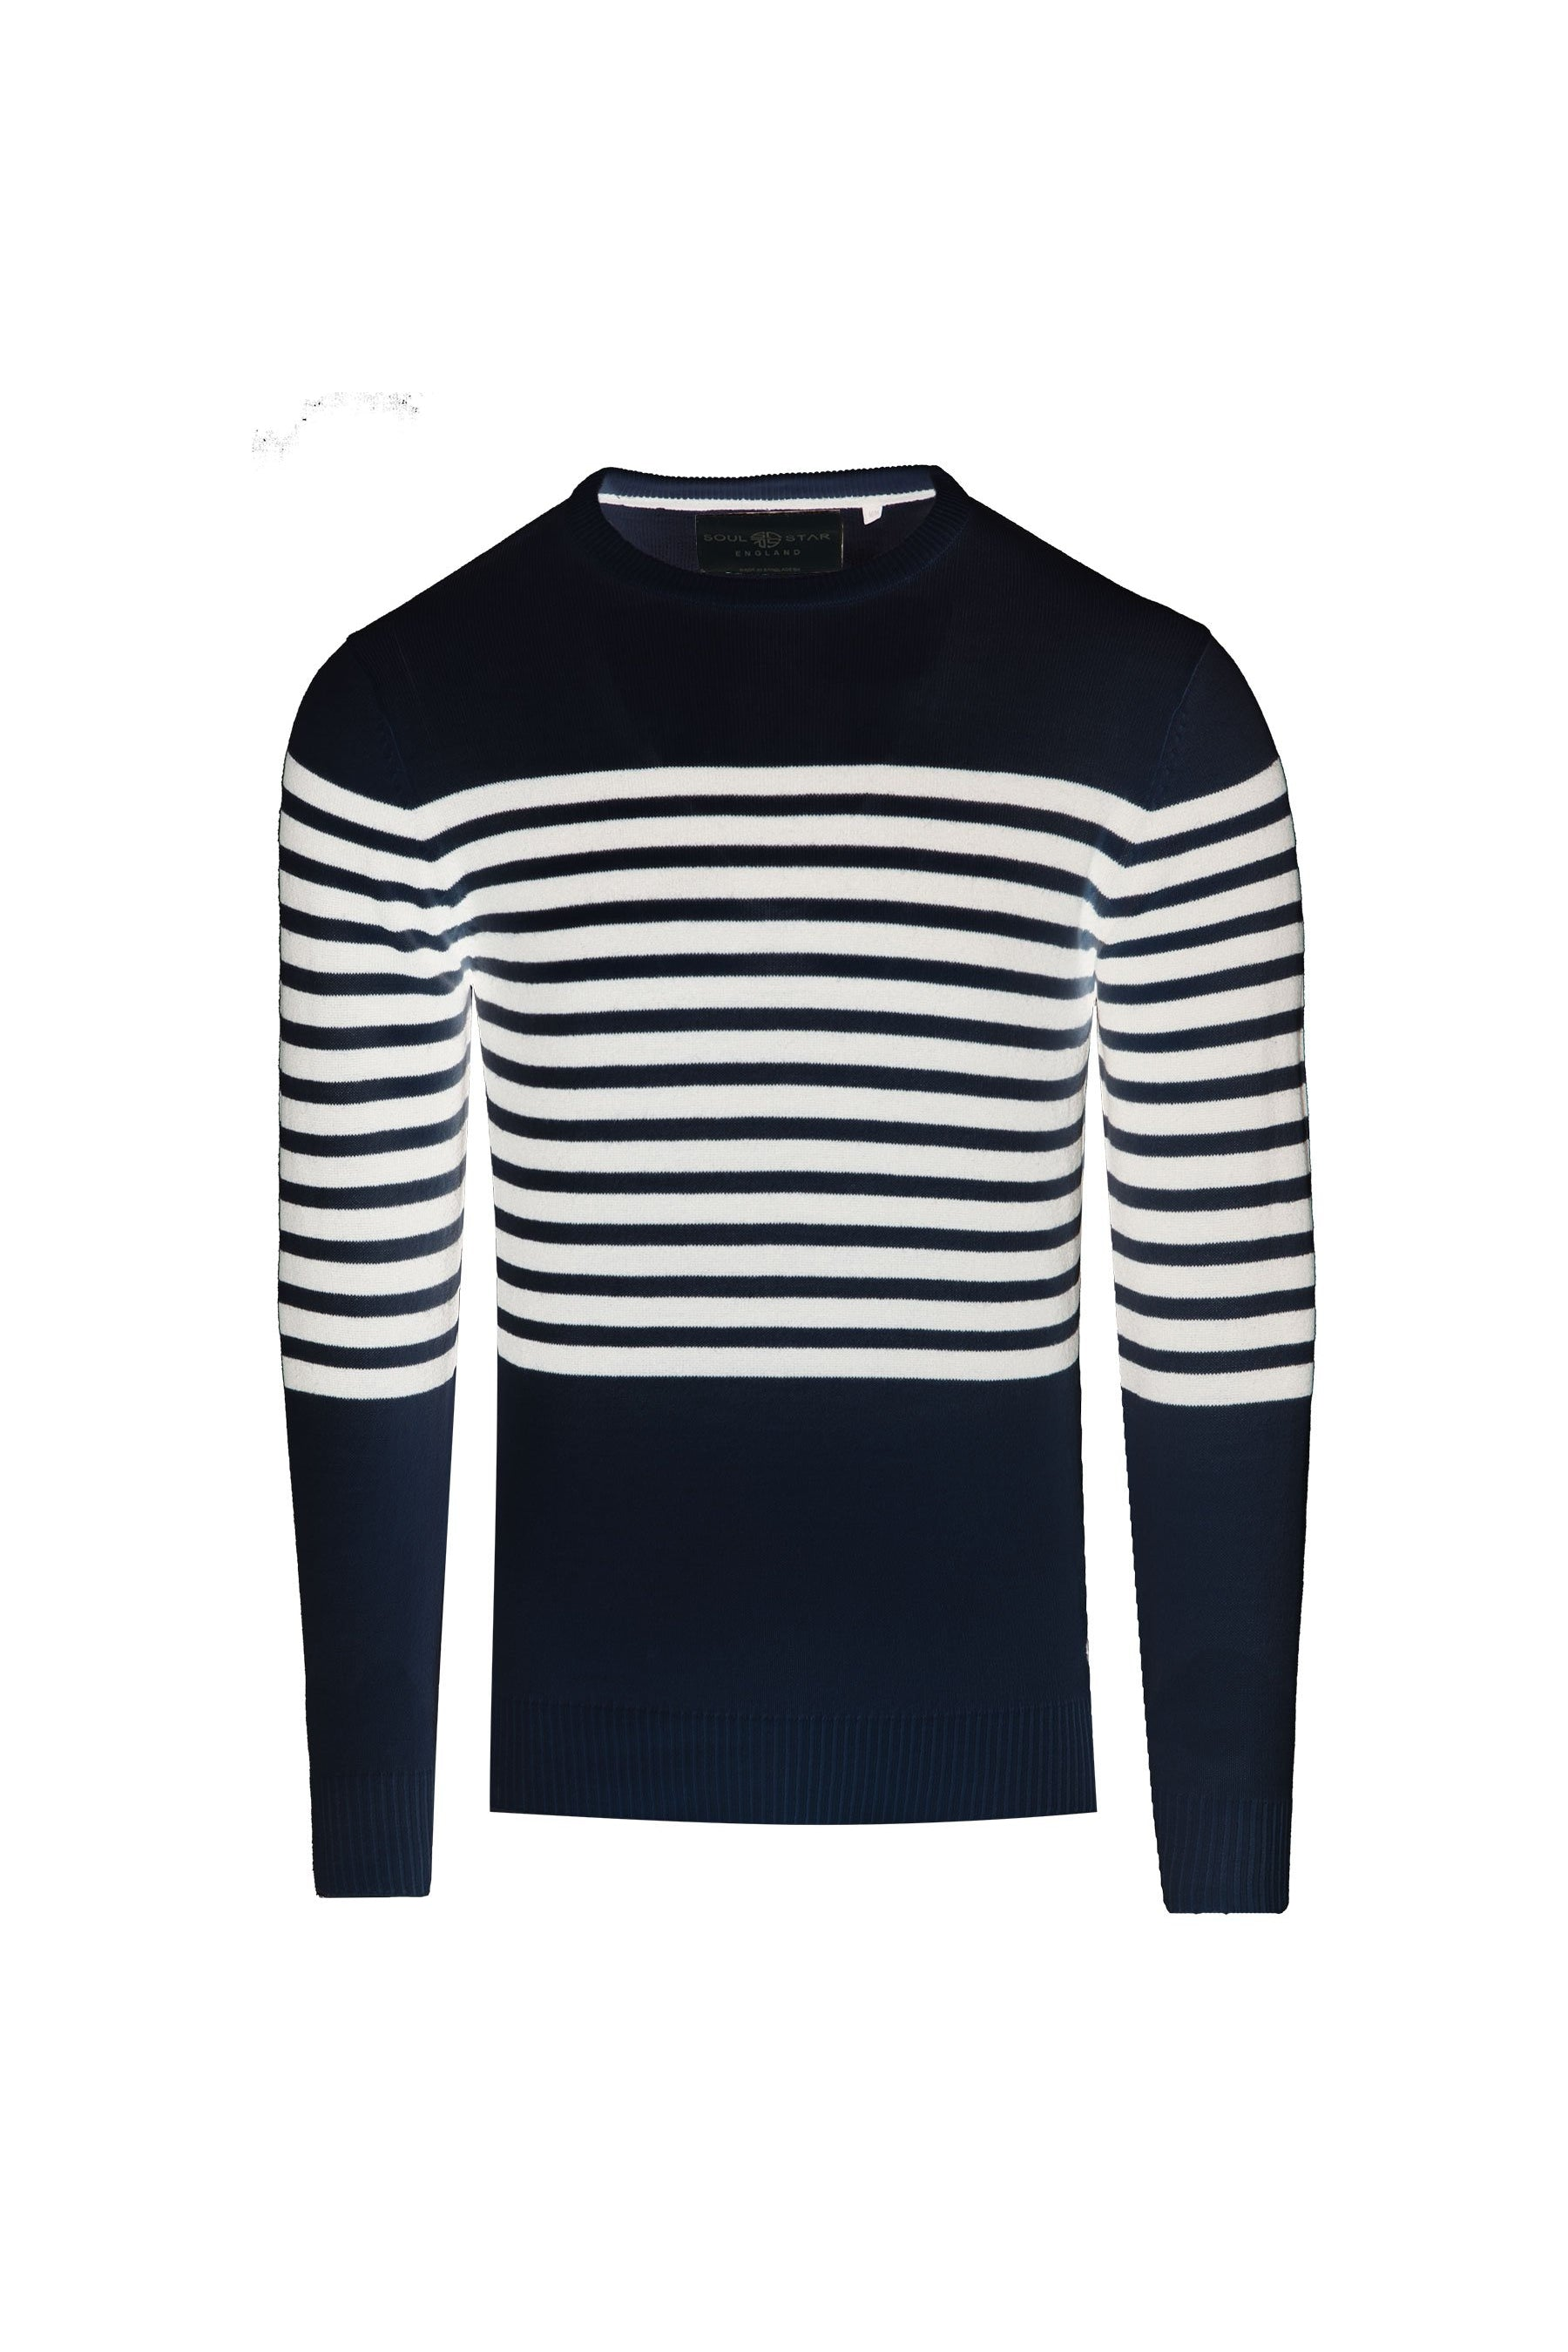 Stripe Knit Navy